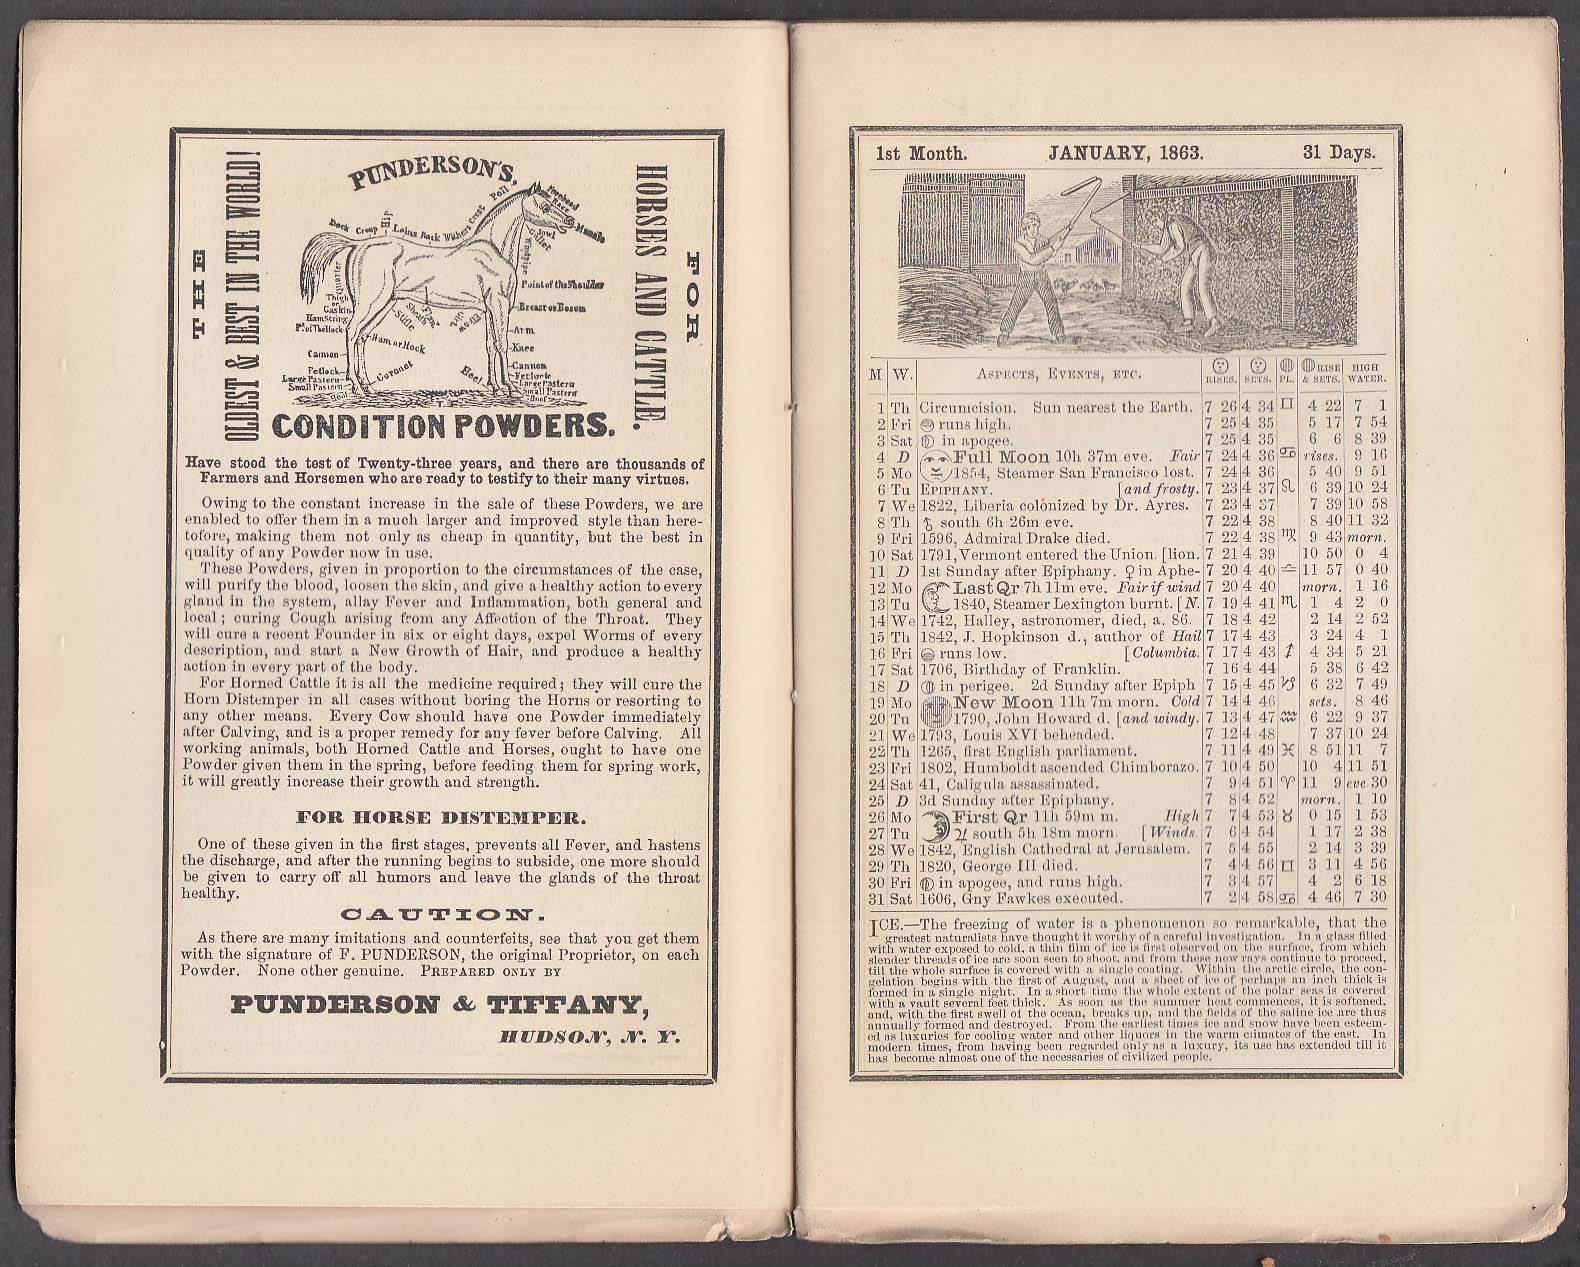 Munsell: Webster's Calendar or Albany Almanac 1863